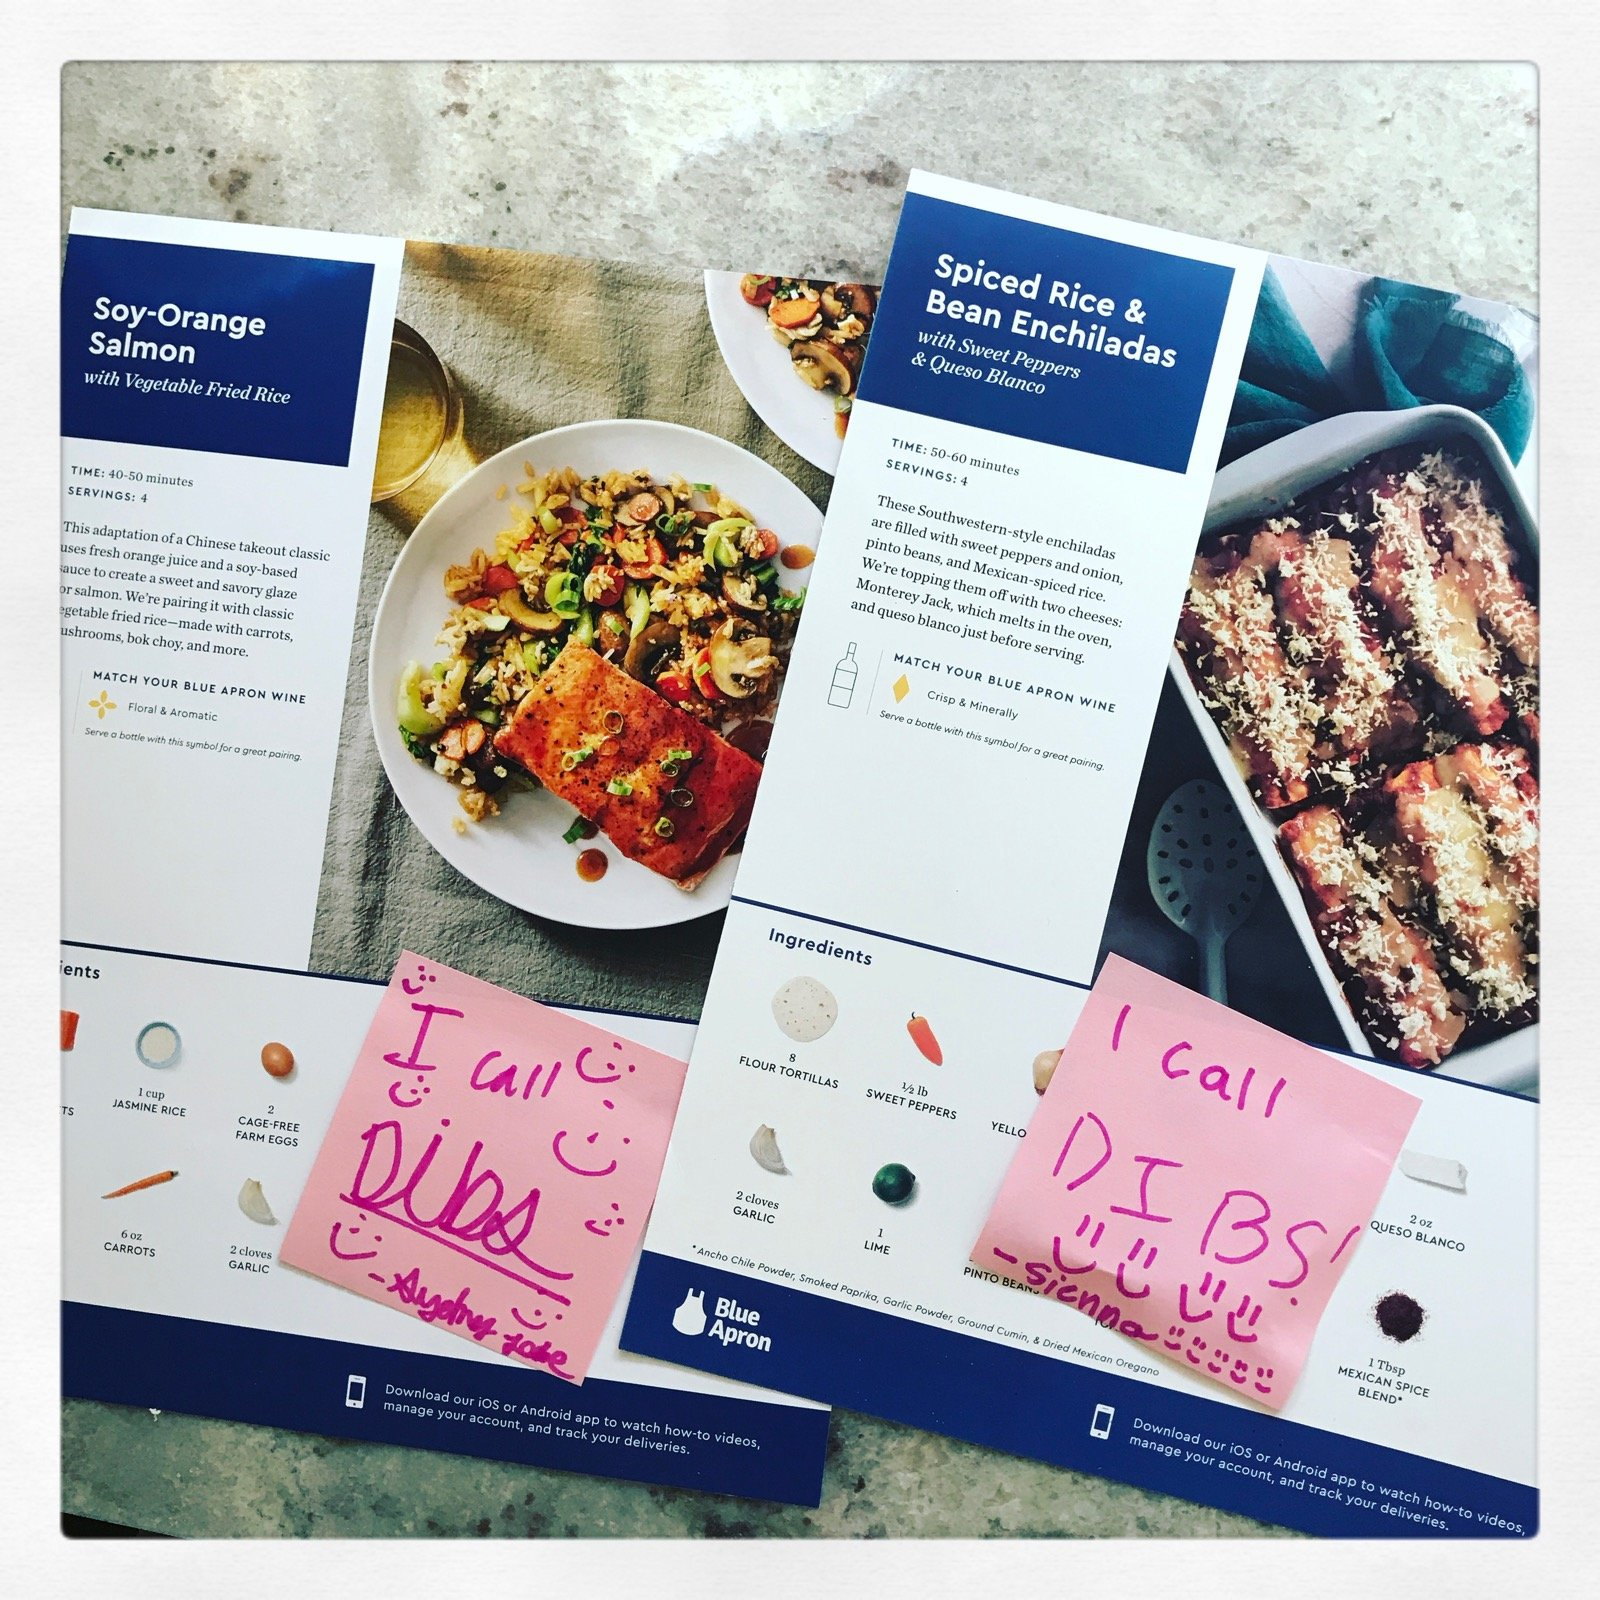 5 Things to Know About Blue Apron